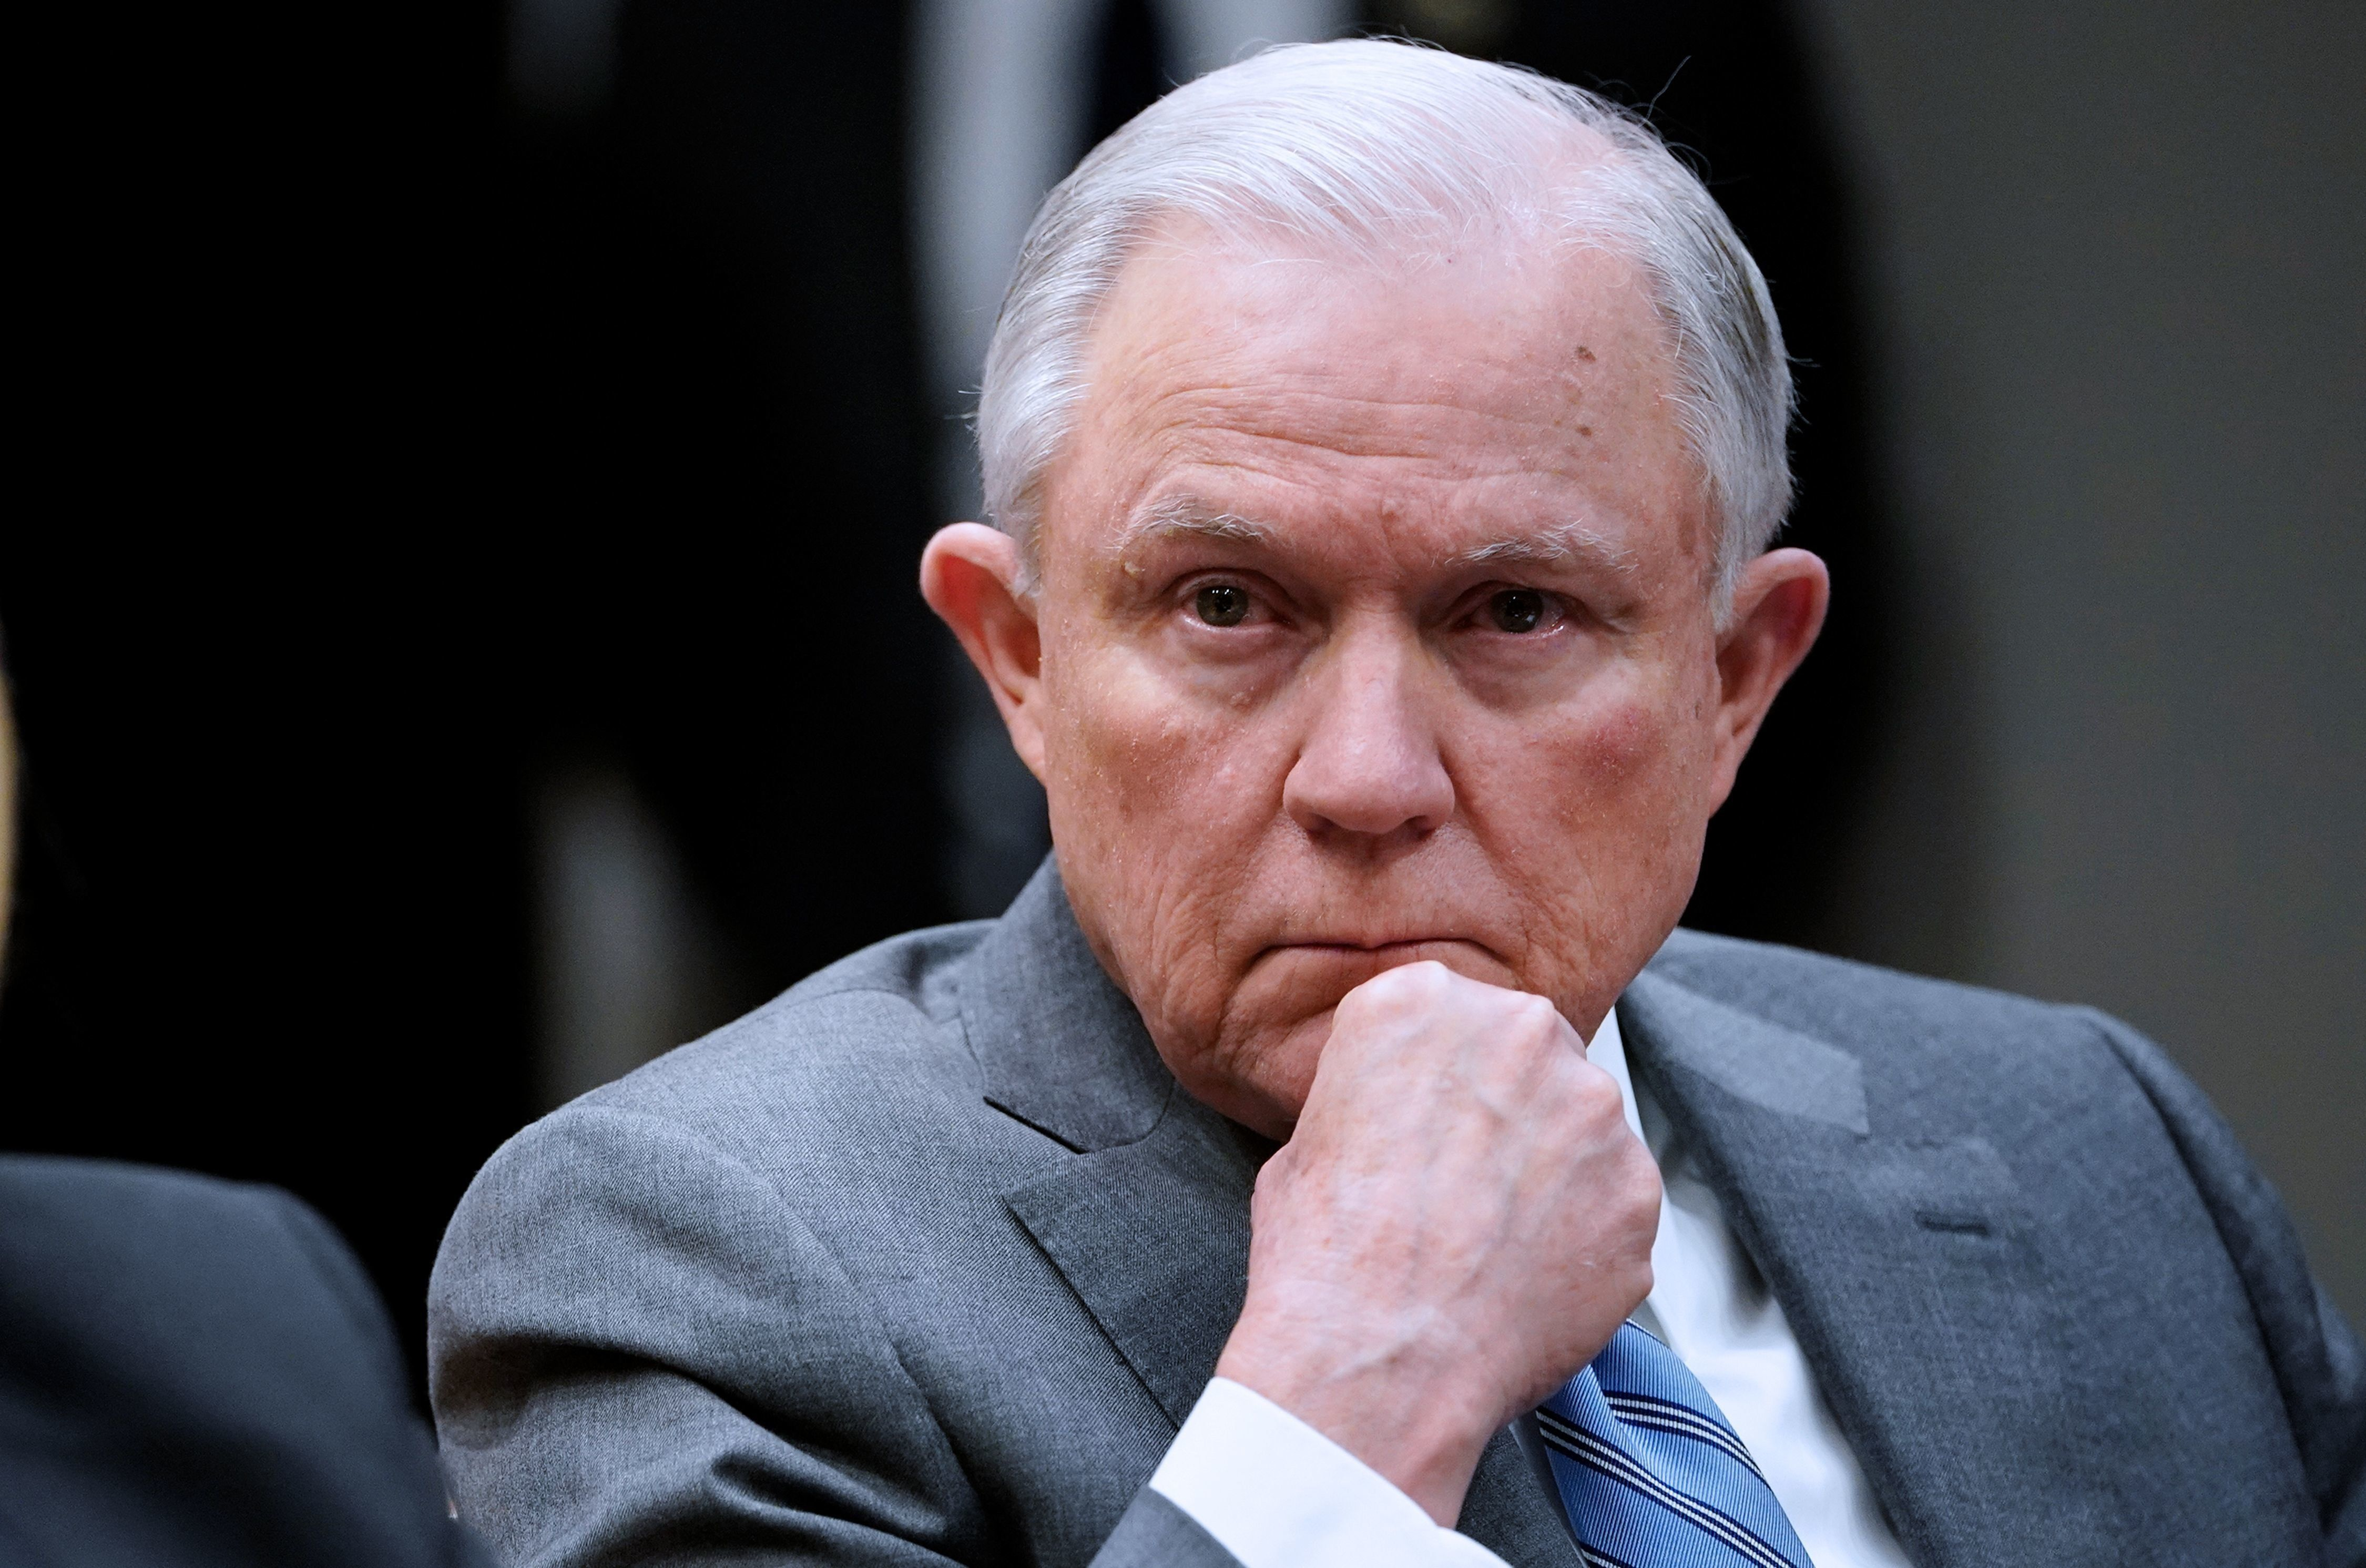 Sanctuary cities lawsuit: Jeff Sessions, federal government abuse their power